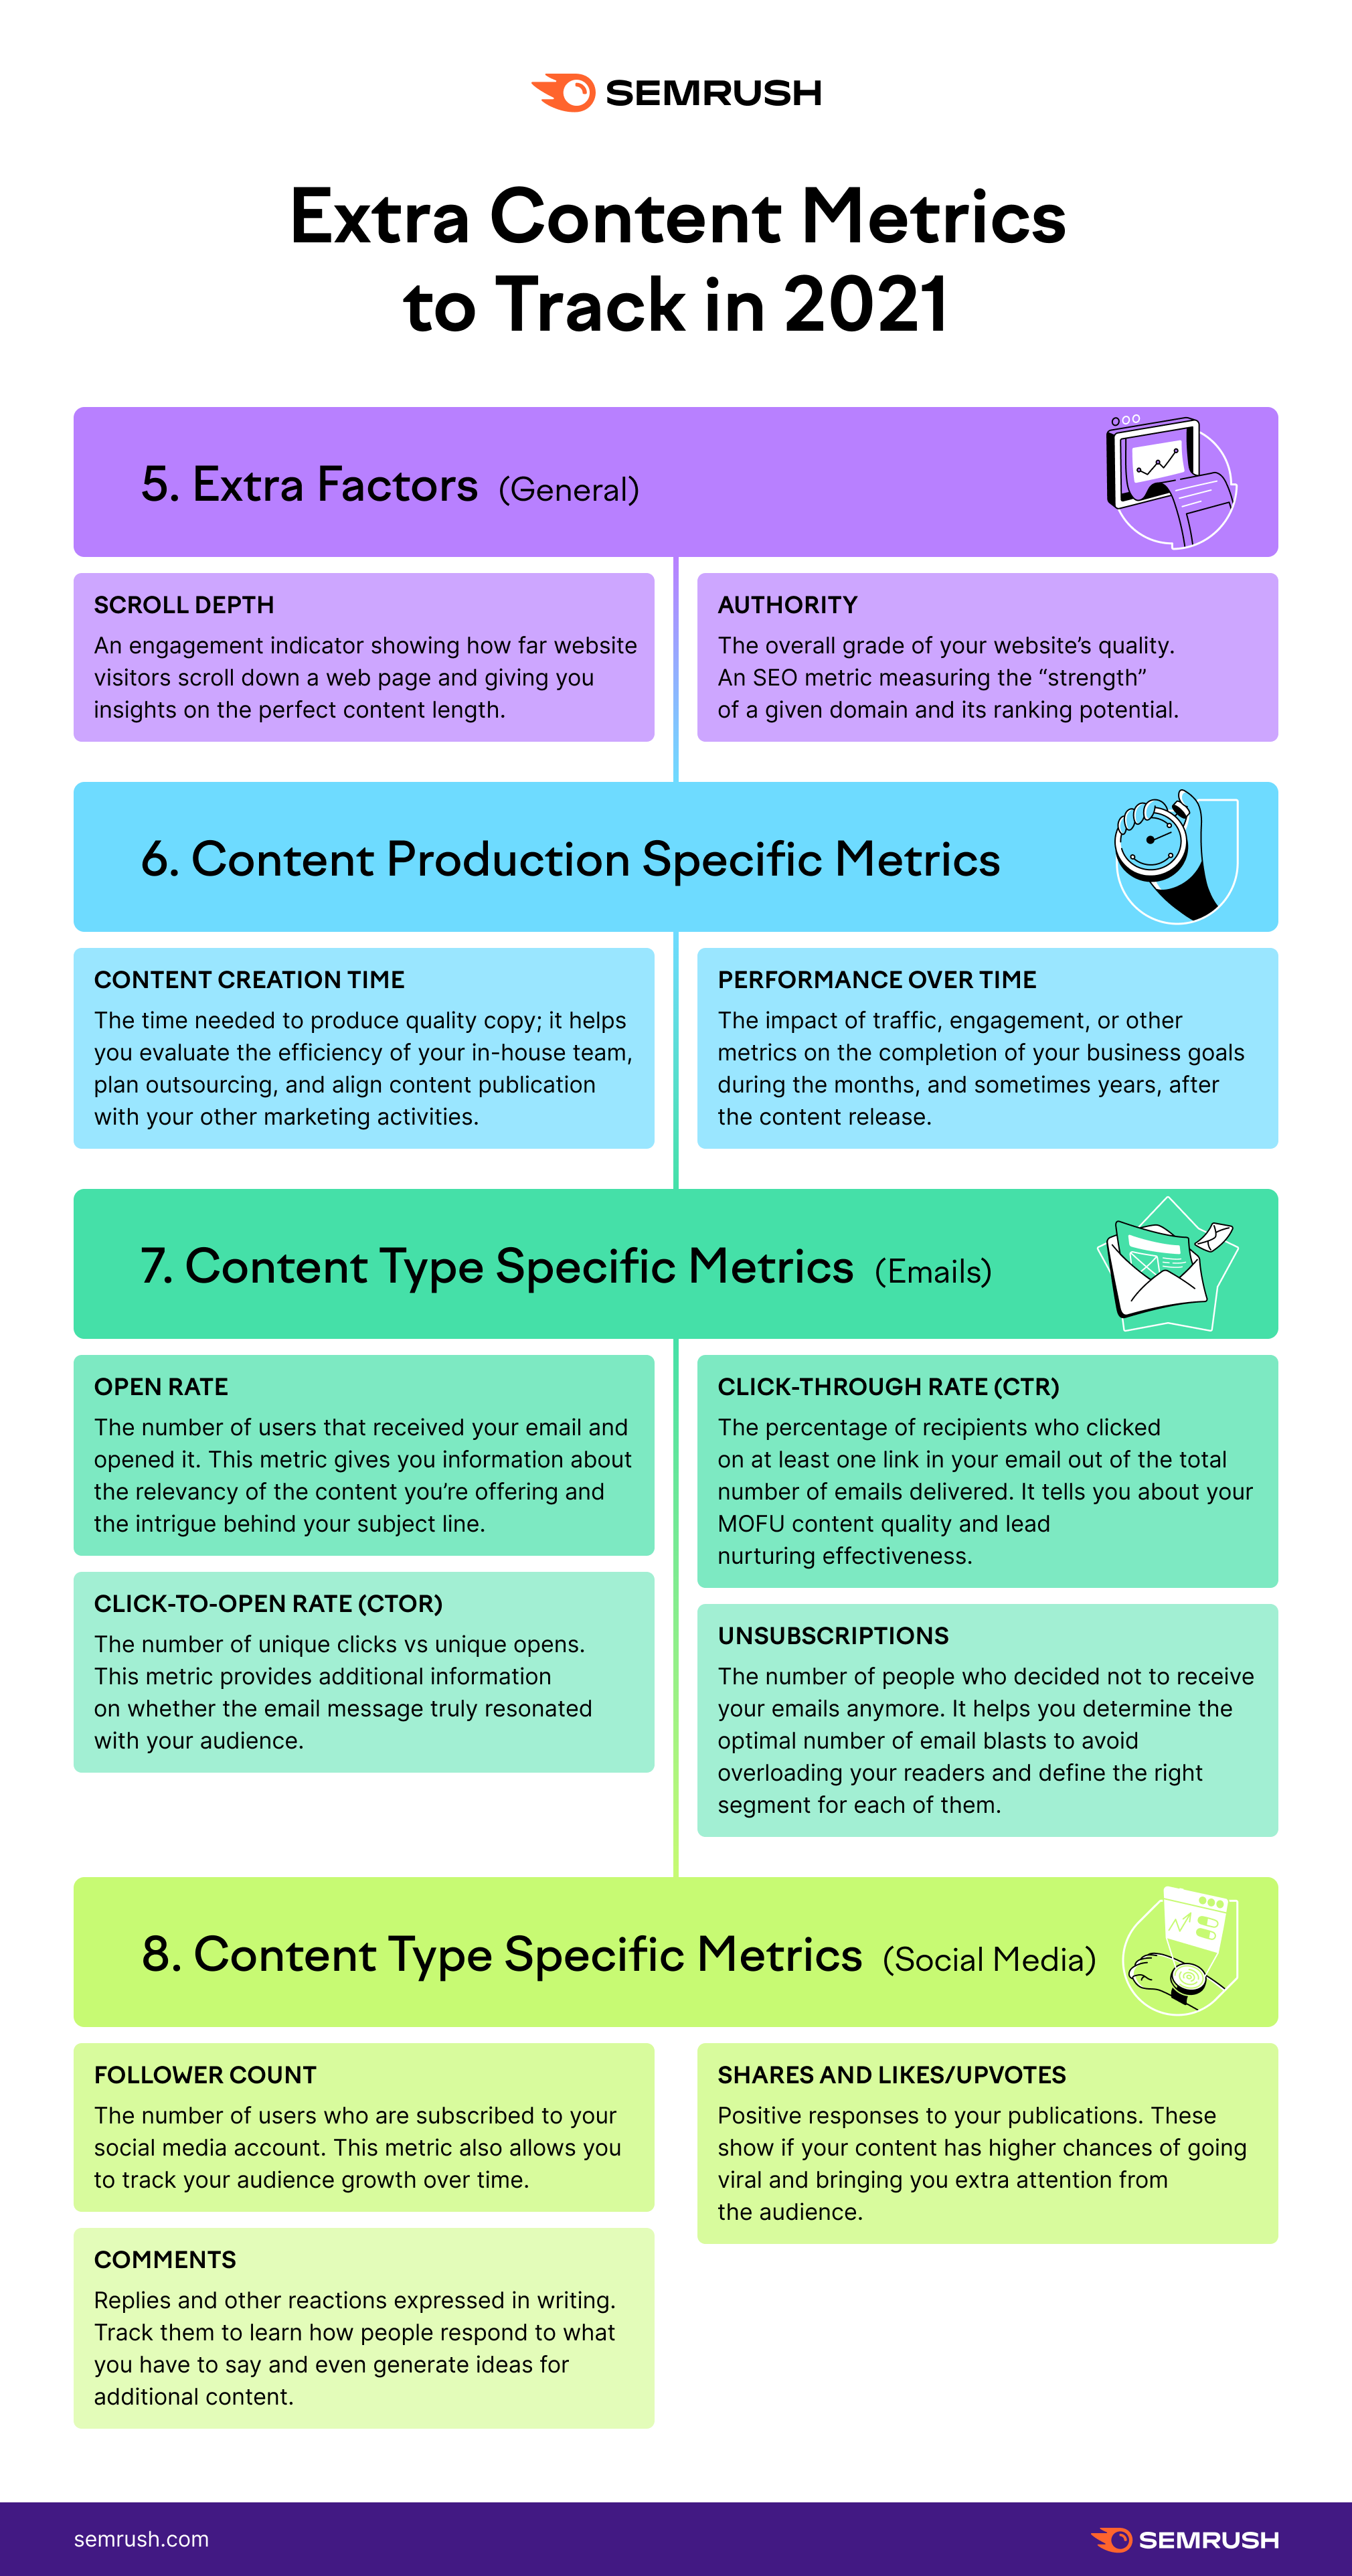 Extra Content Metrics to Track in 2021